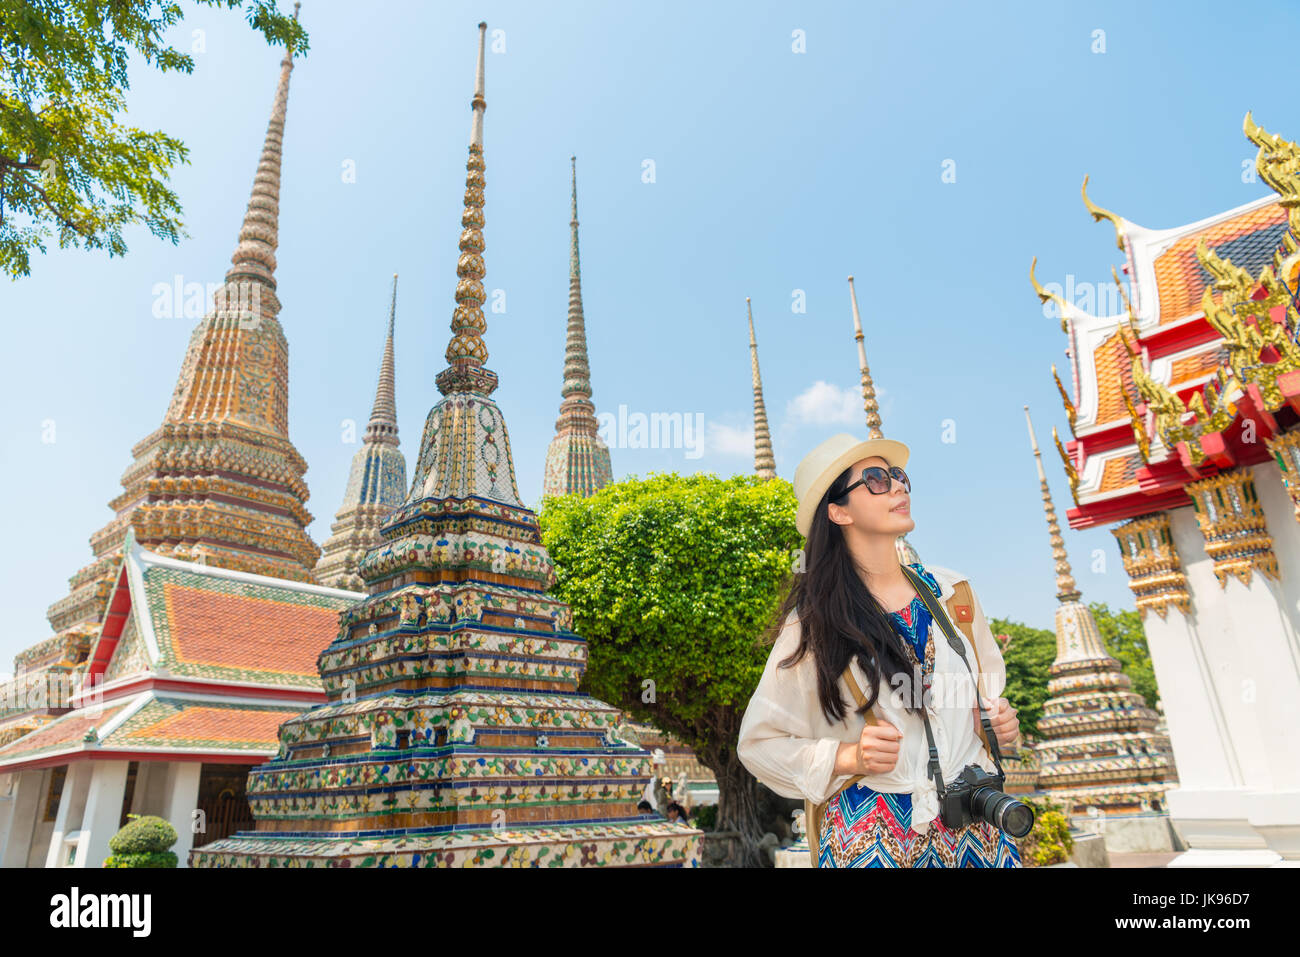 8a533f9d80 Bangkok city asian chinese woman enjoying view of wat pho temple shrine  living a happy lifestyle